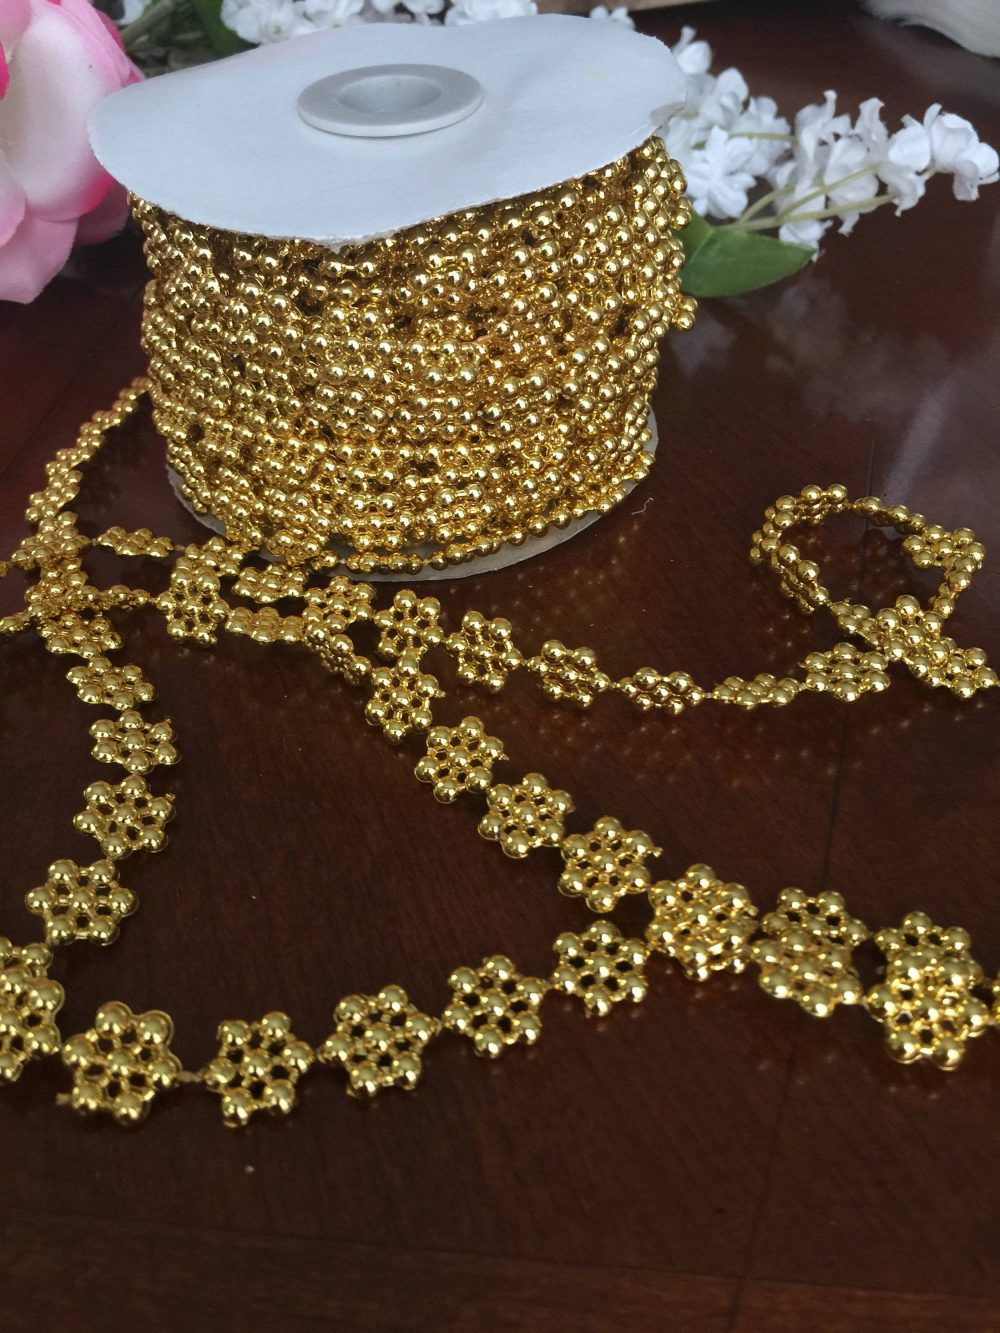 1 Yard Of Gold Tone Flower Beads Garland, Acrylic Flower Strand, Plastic Bead Wedding Decor, Baptism Supplies, Decor